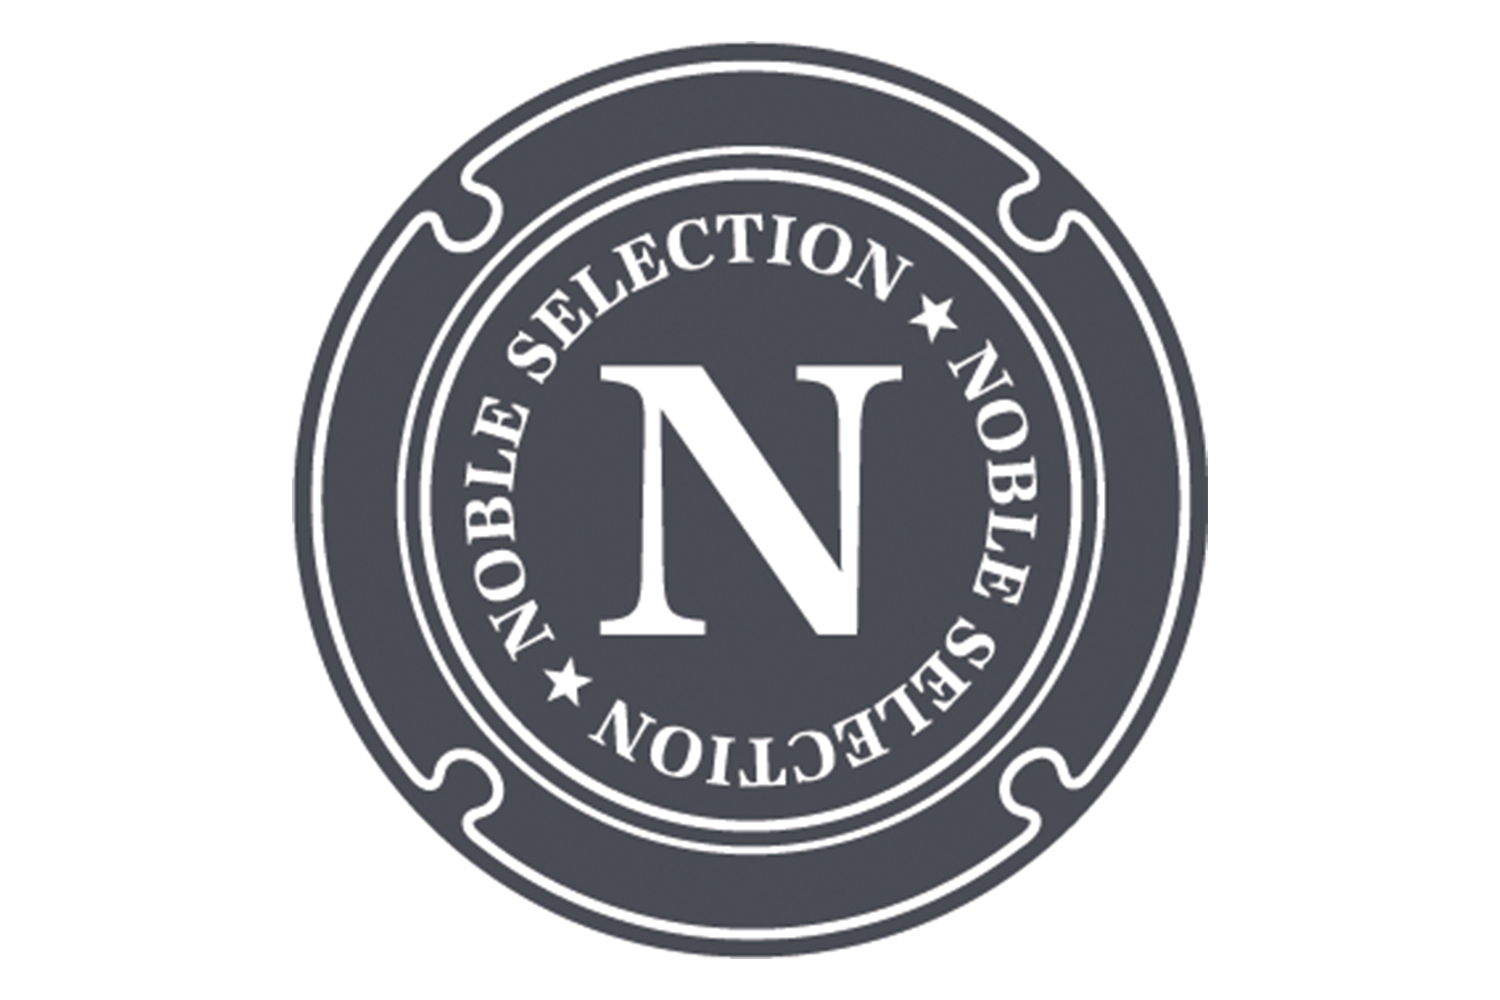 wine agency noble selection